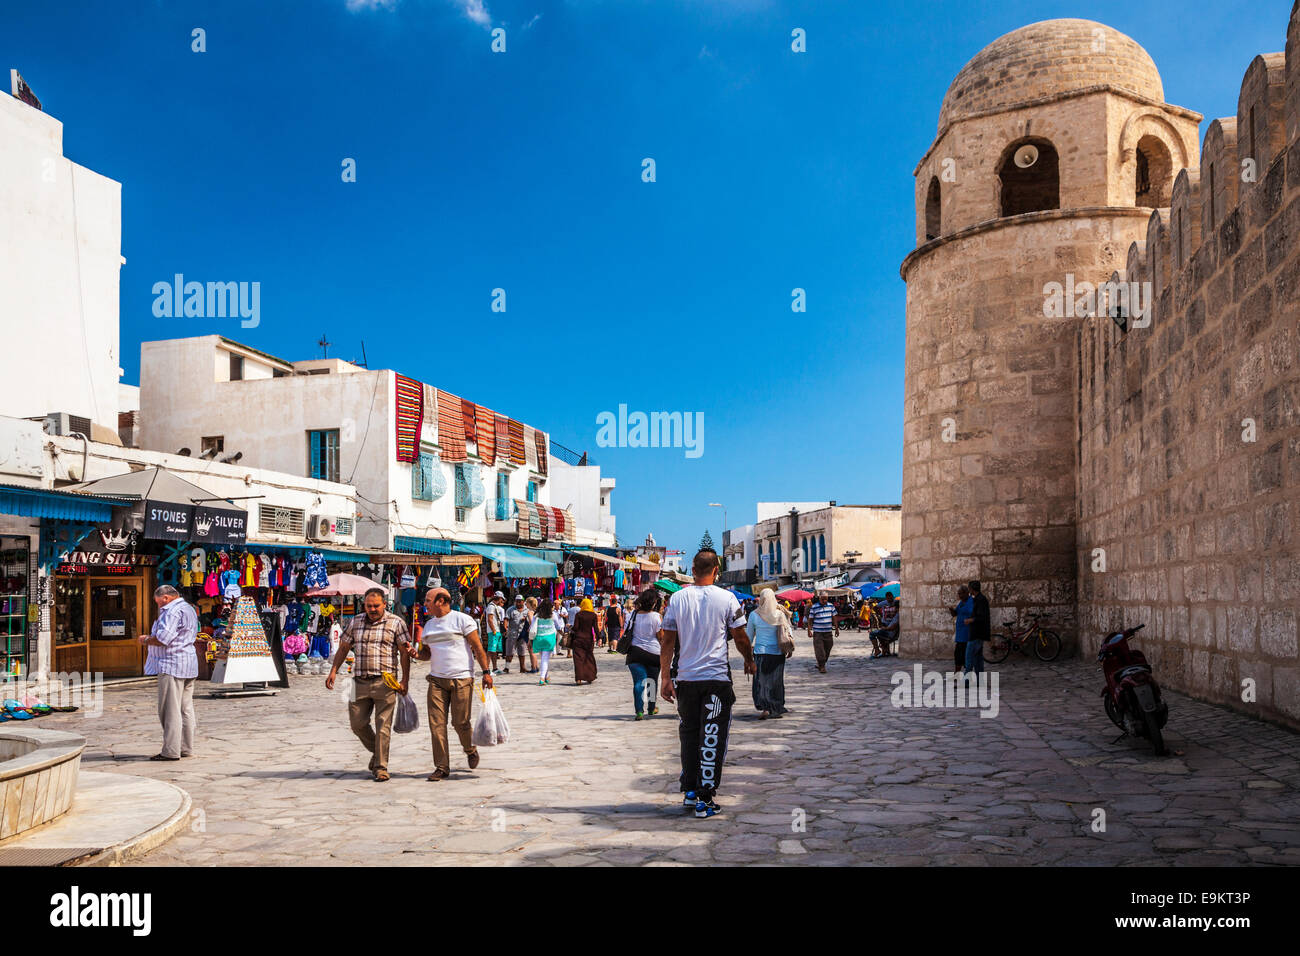 La Place de la Grande Mosquée de Sousse, Tunisie. Photo Stock